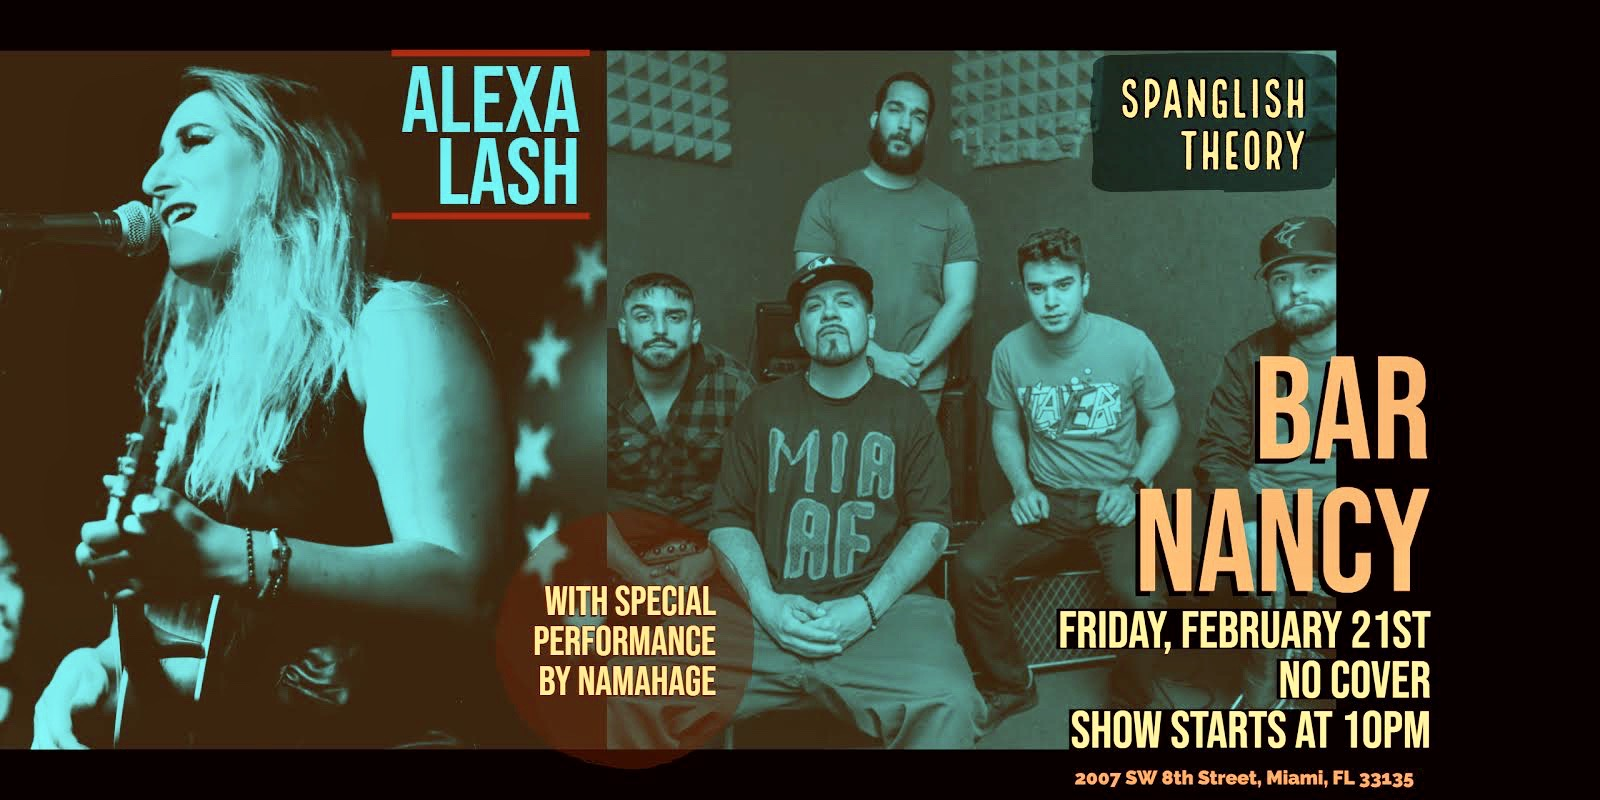 Join us for a night of Alternative Rock and Roll, Hip Hop, Pop, Folk Music and Latin Fusion! Featuring: ALEXA LASH SPANGLISH THEORY Special Guest Performance By: NAMAHAGE!